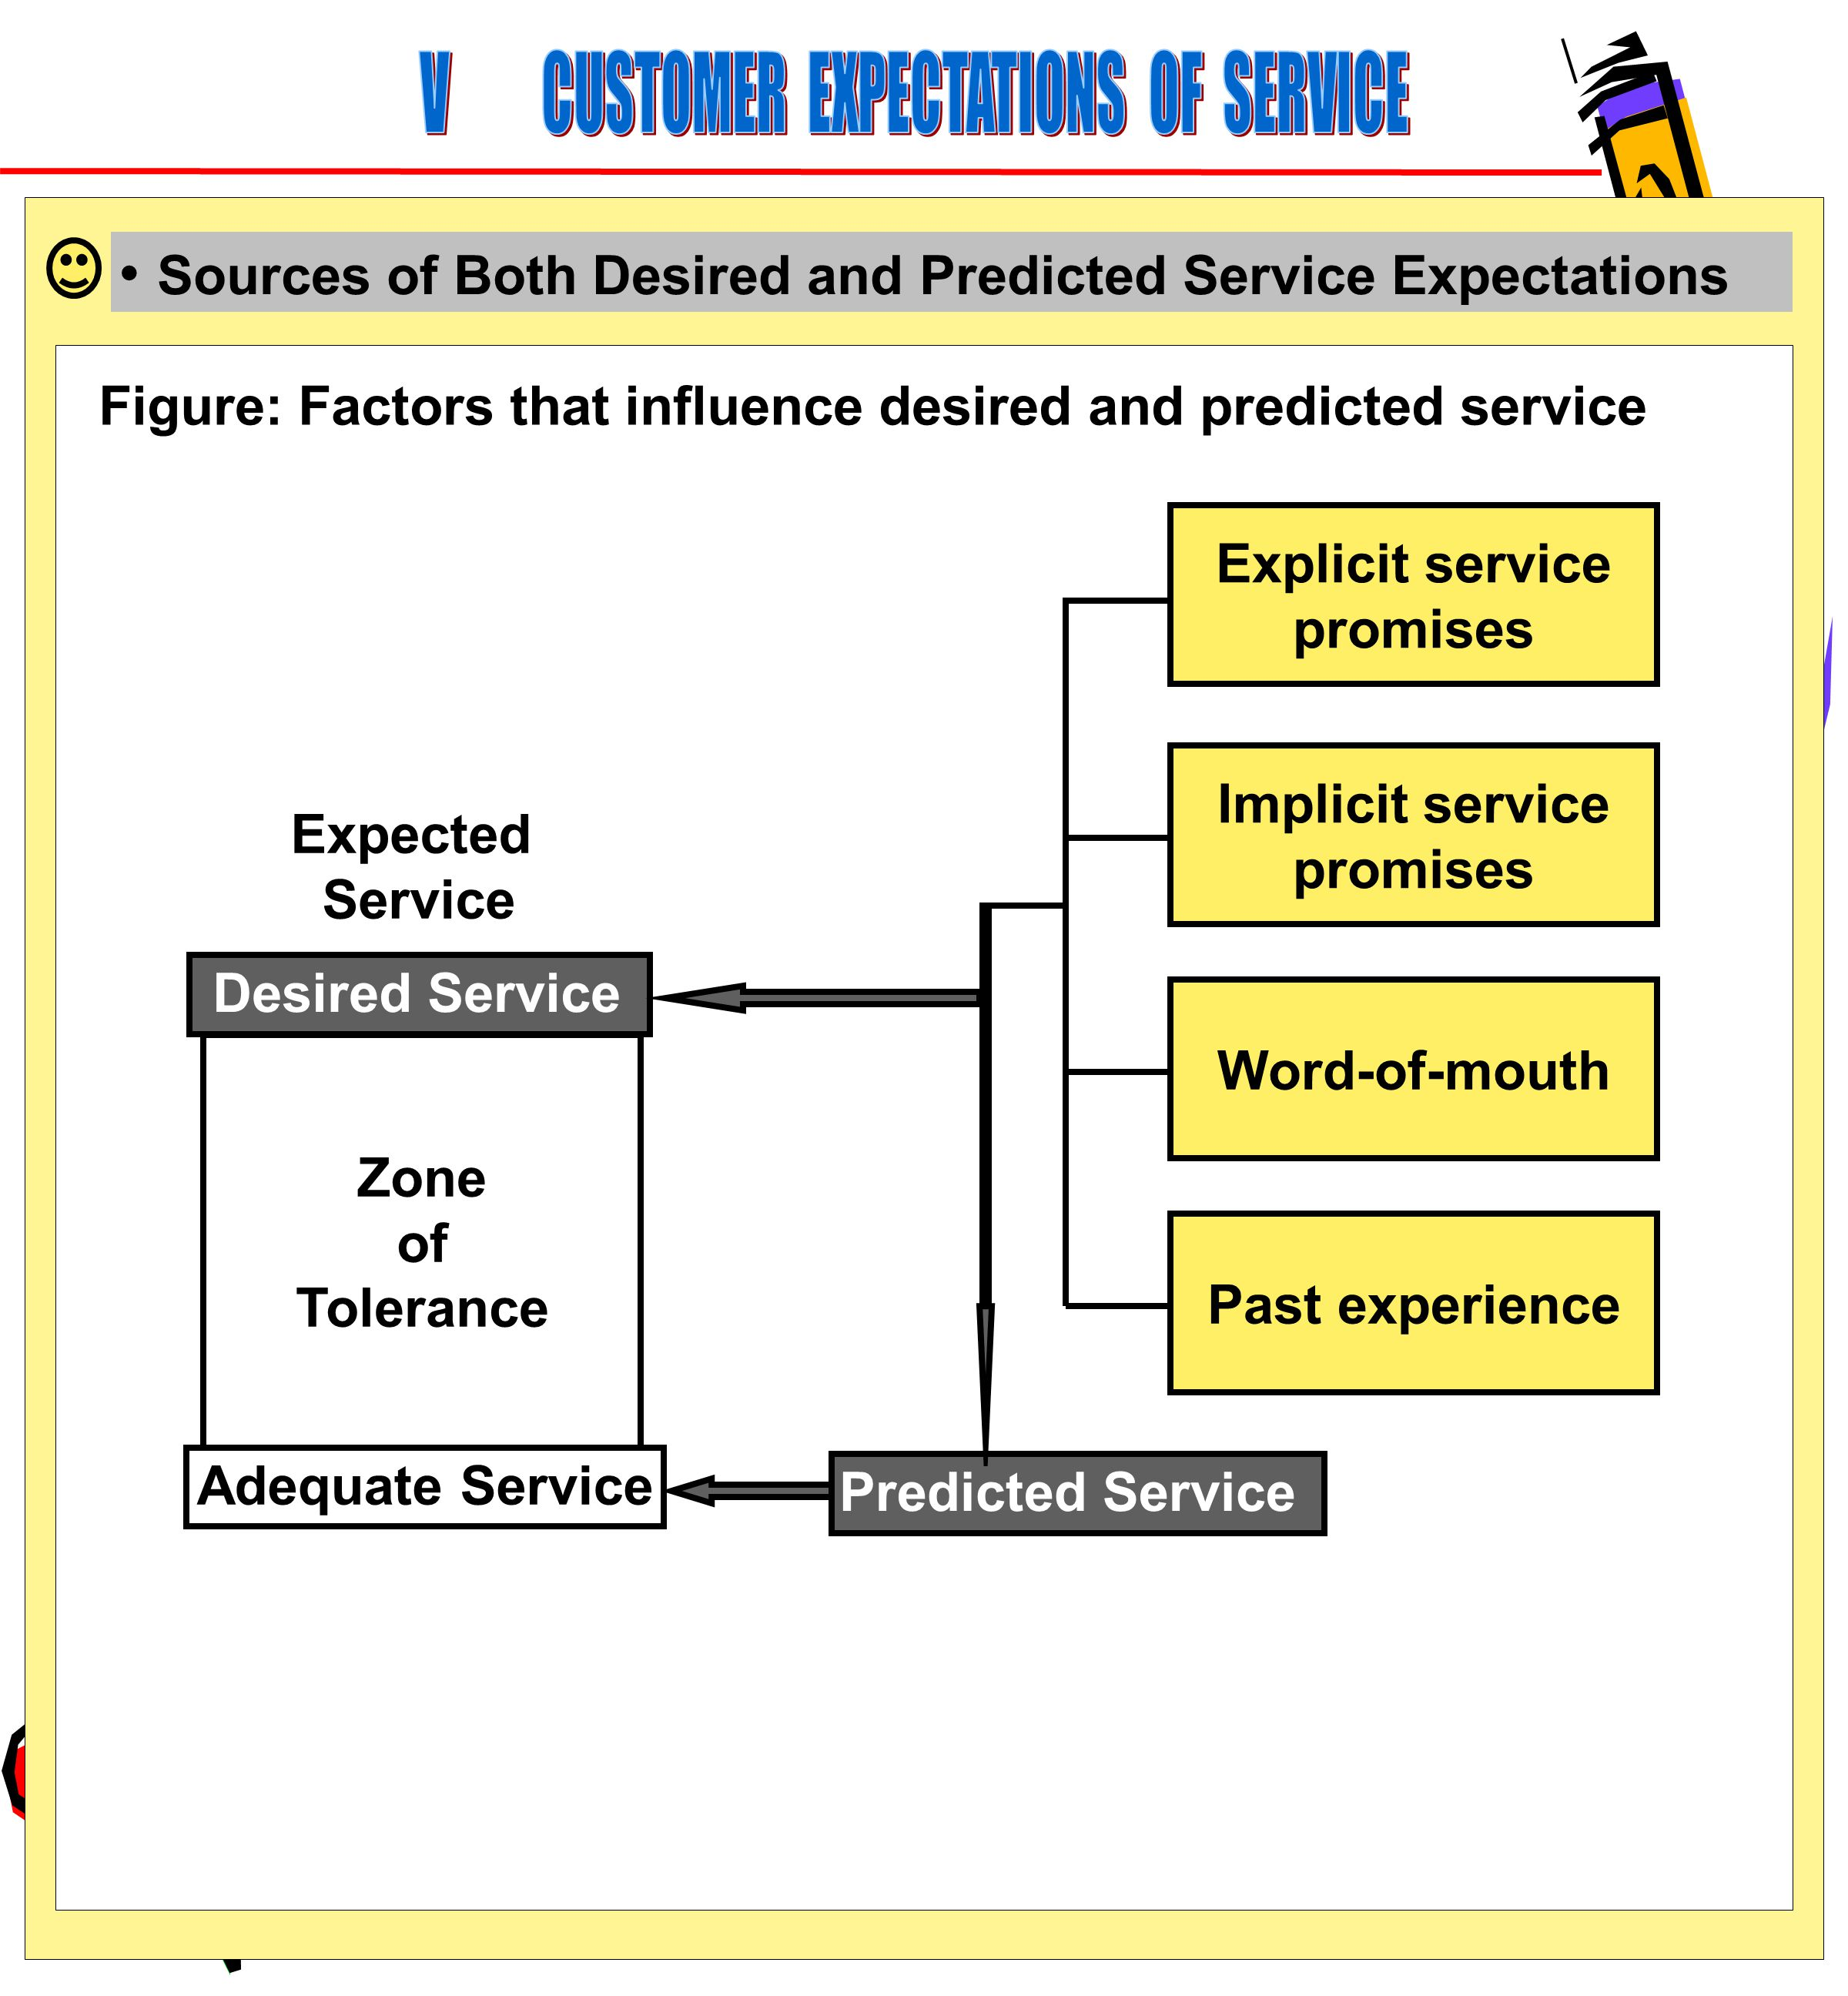 64 Sources of Both Desired and Predicted Service Expectations Figure: Factors that influence desired and predicted service Explicit service promises Past experience Word-of-mouth Implicit service promises Desired Service Zone of Tolerance Adequate Service Predicted Service Expected Service